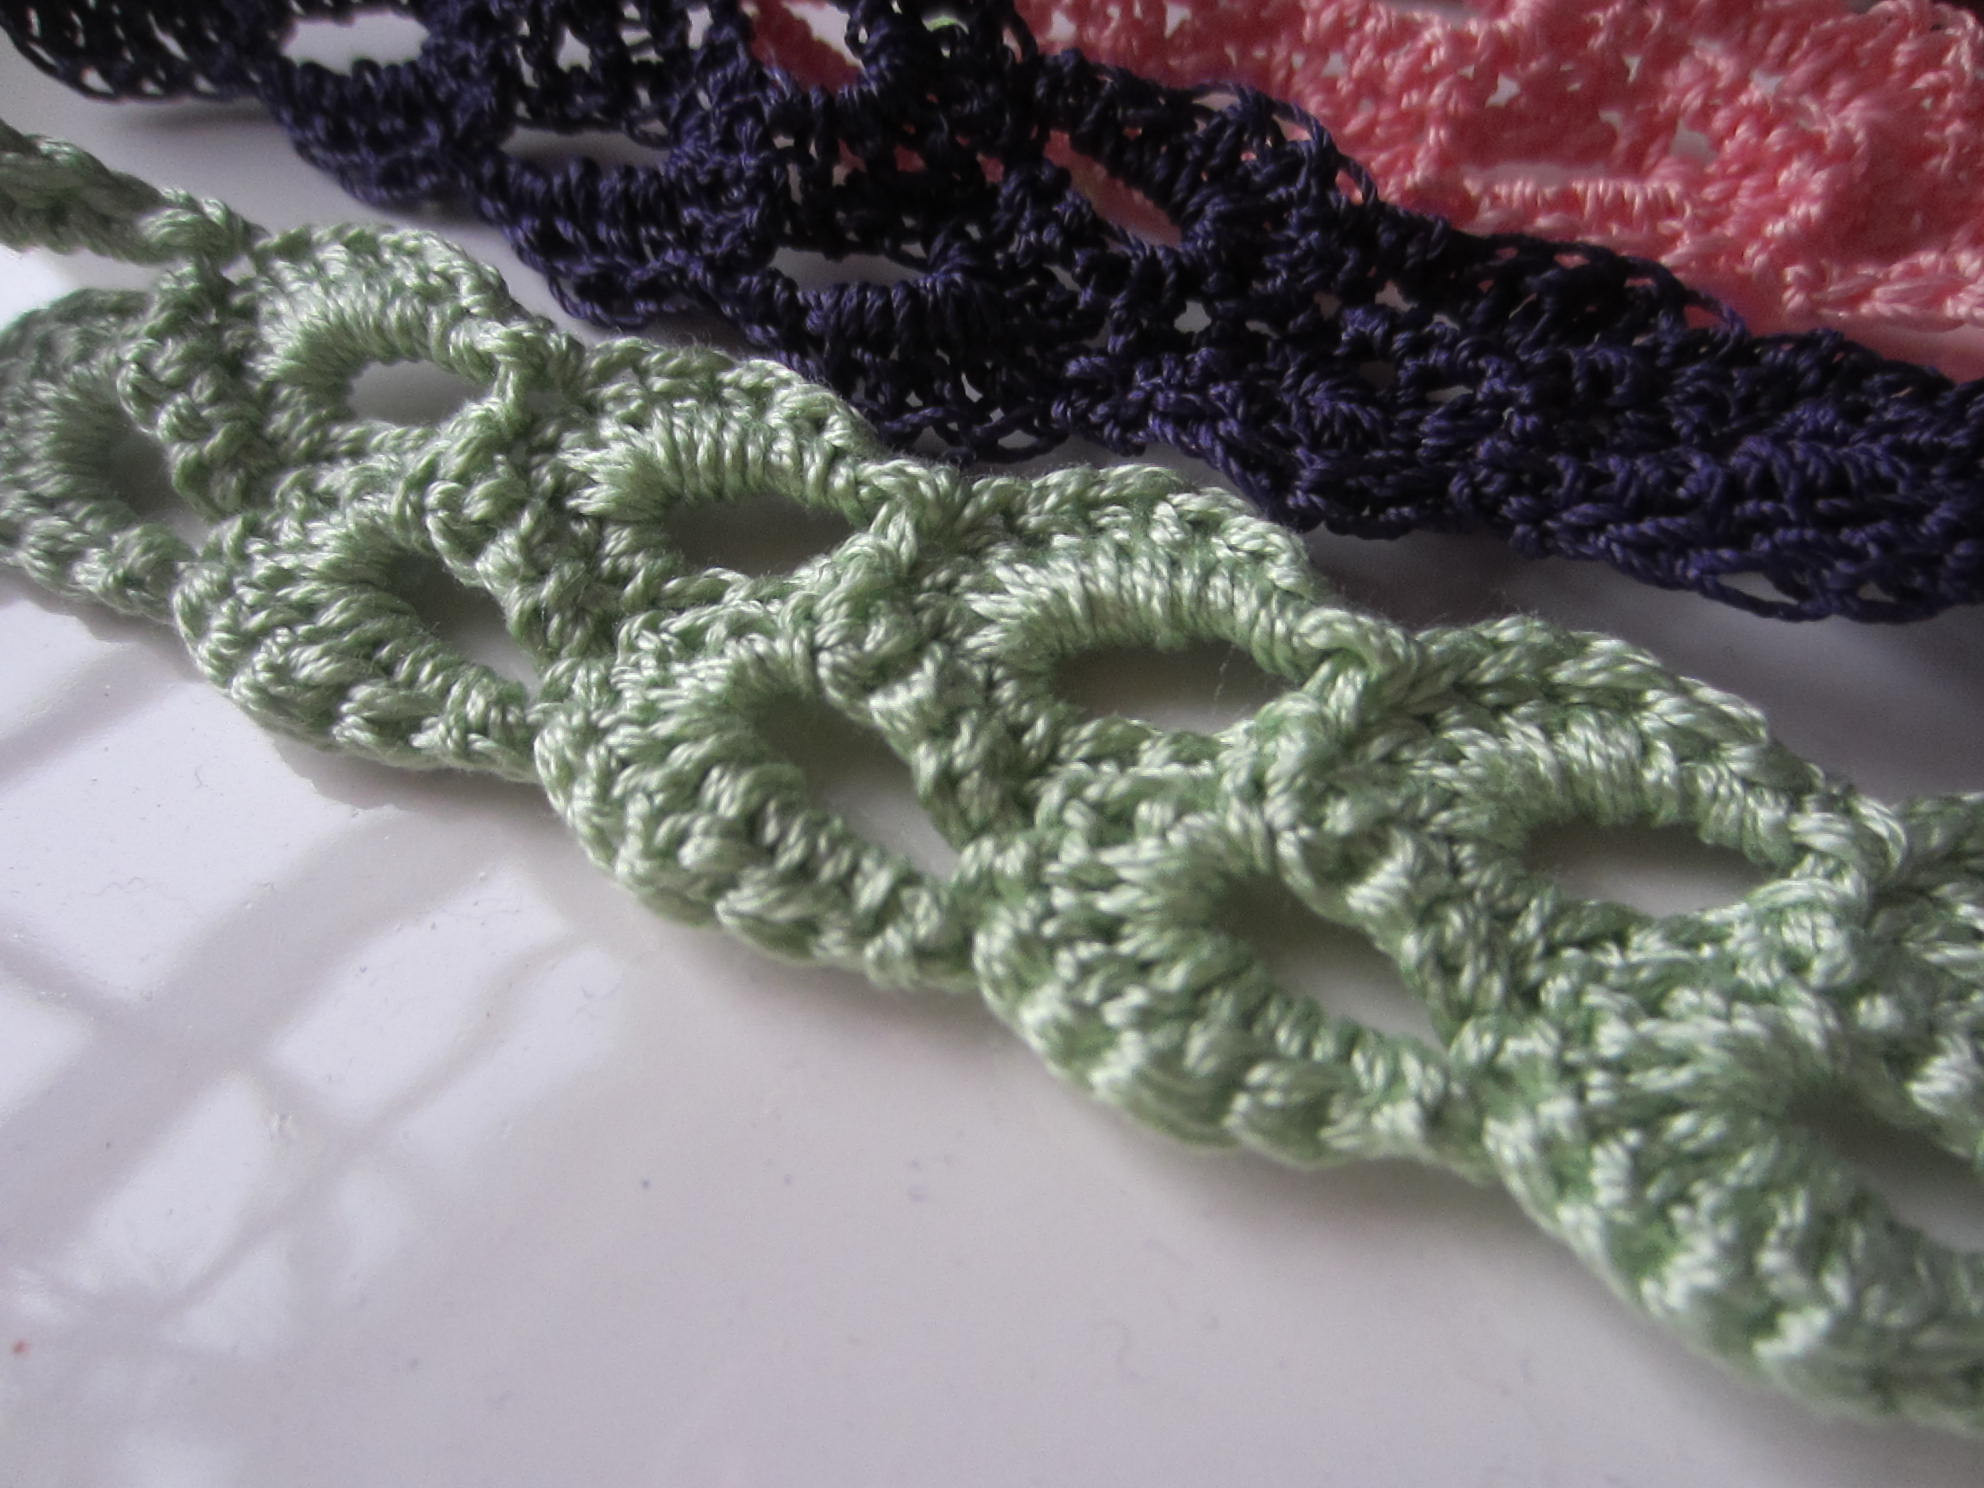 Youtube Crochet Elegant How to Crochet A Lace Scallop Trim 2 by Gwen Fisher with Of Brilliant 46 Pictures Youtube Crochet